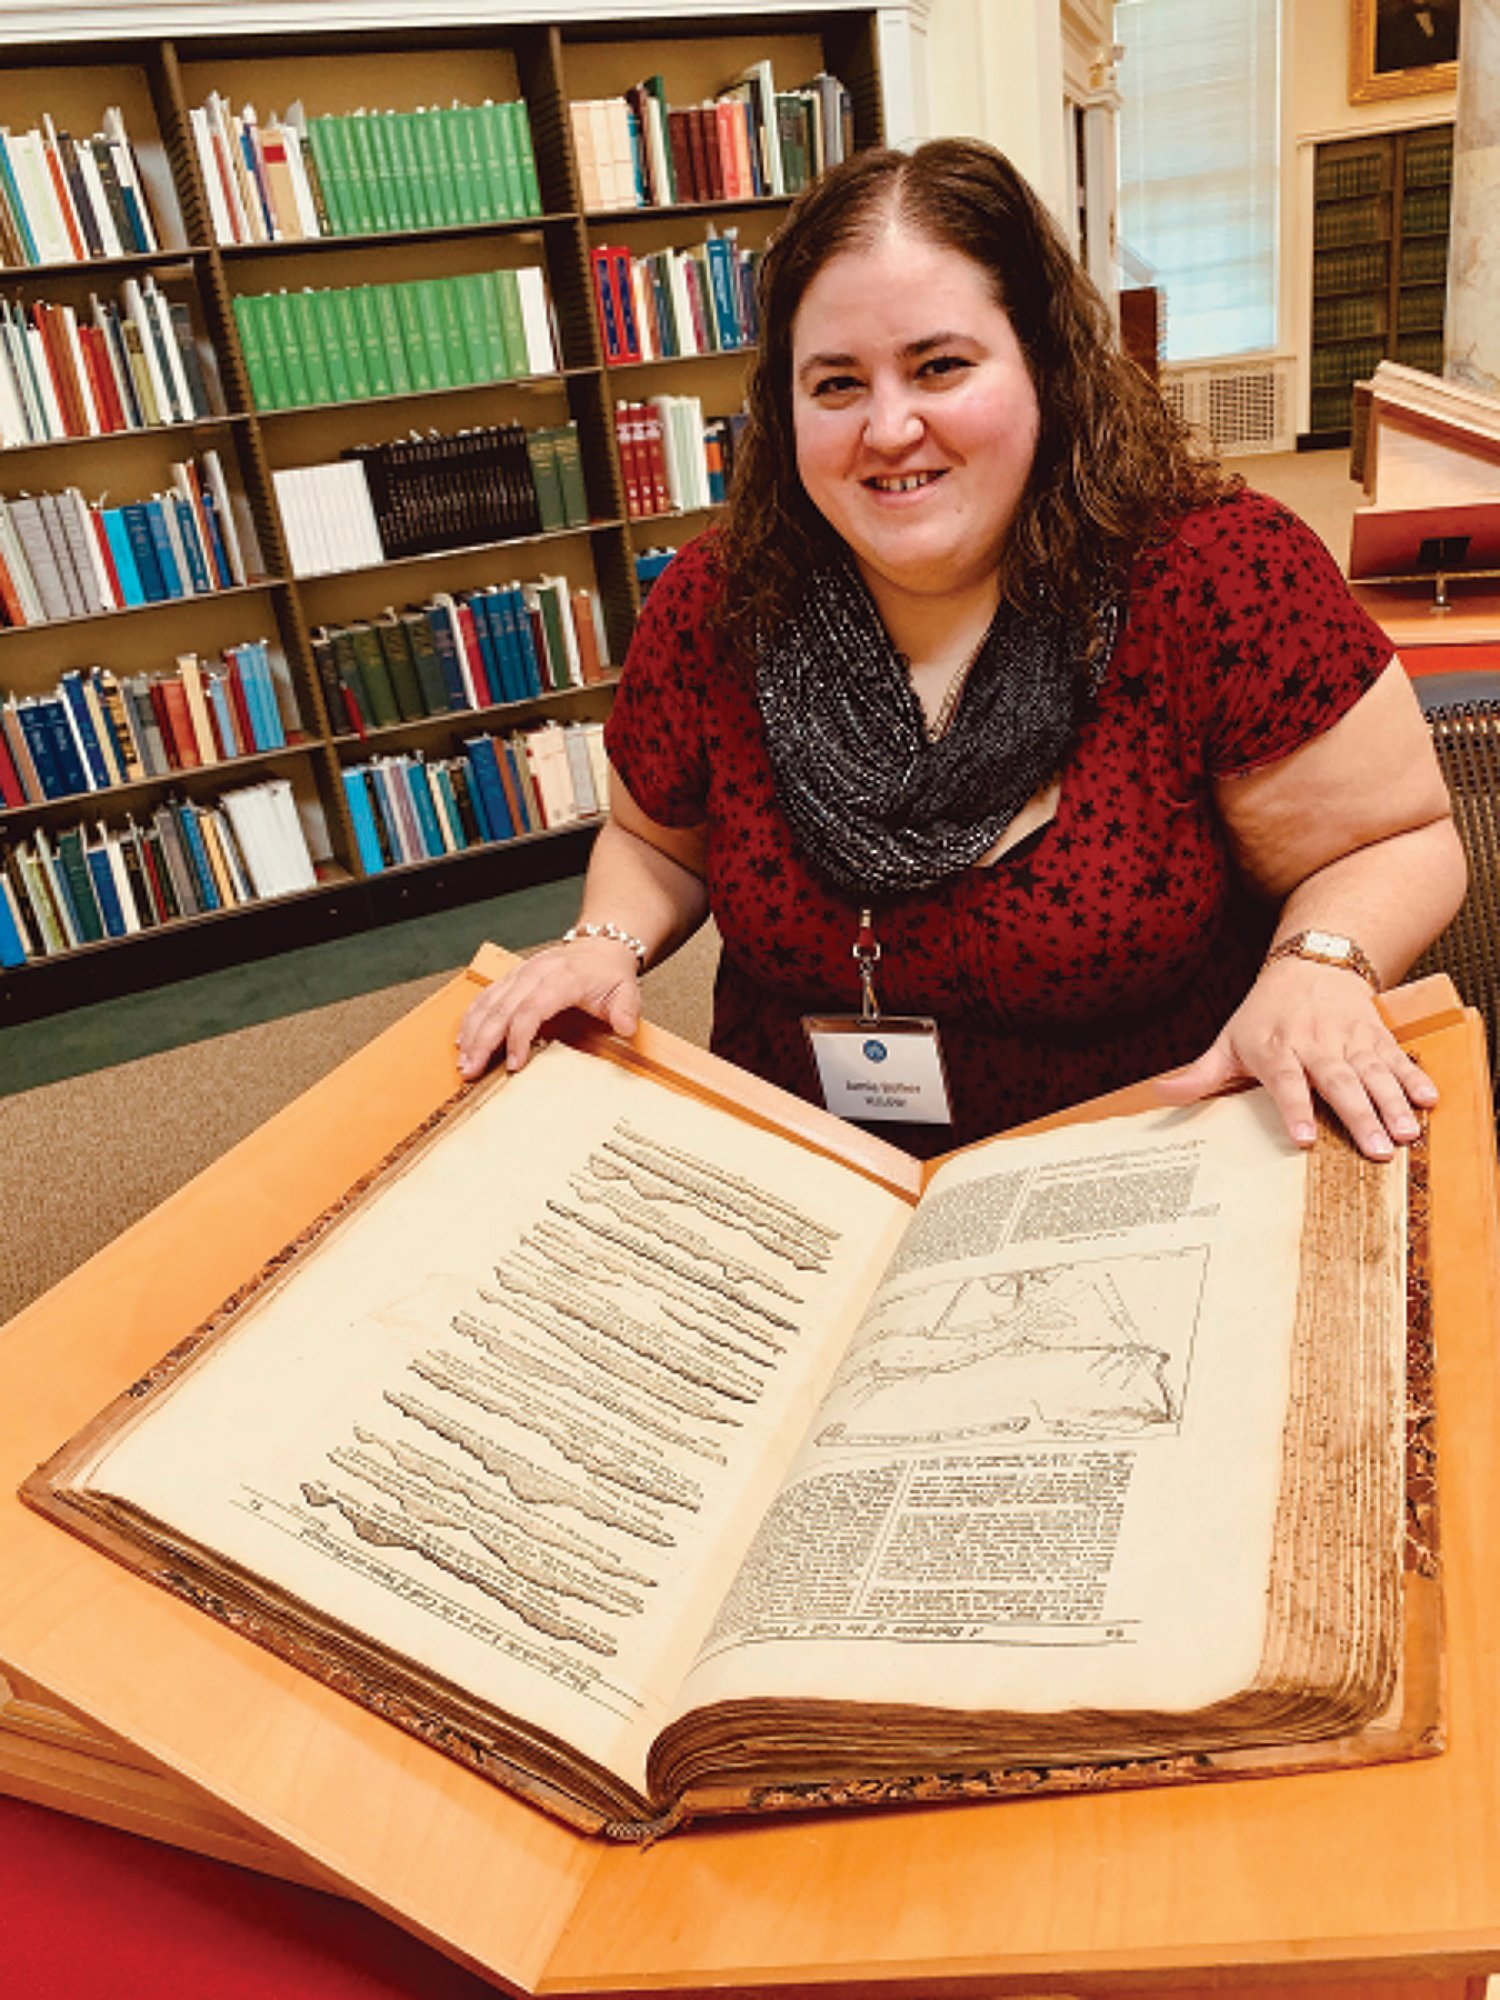 Ben Bascom via AP   Jamie Bolker is seen doing research at the American Antiquarian Society in Worcester, Massachusetts.  When Bolker started teaching composition at MacMurray College in January 2020, she felt like she'd won the lottery. In March, she learned it was permanently closing.